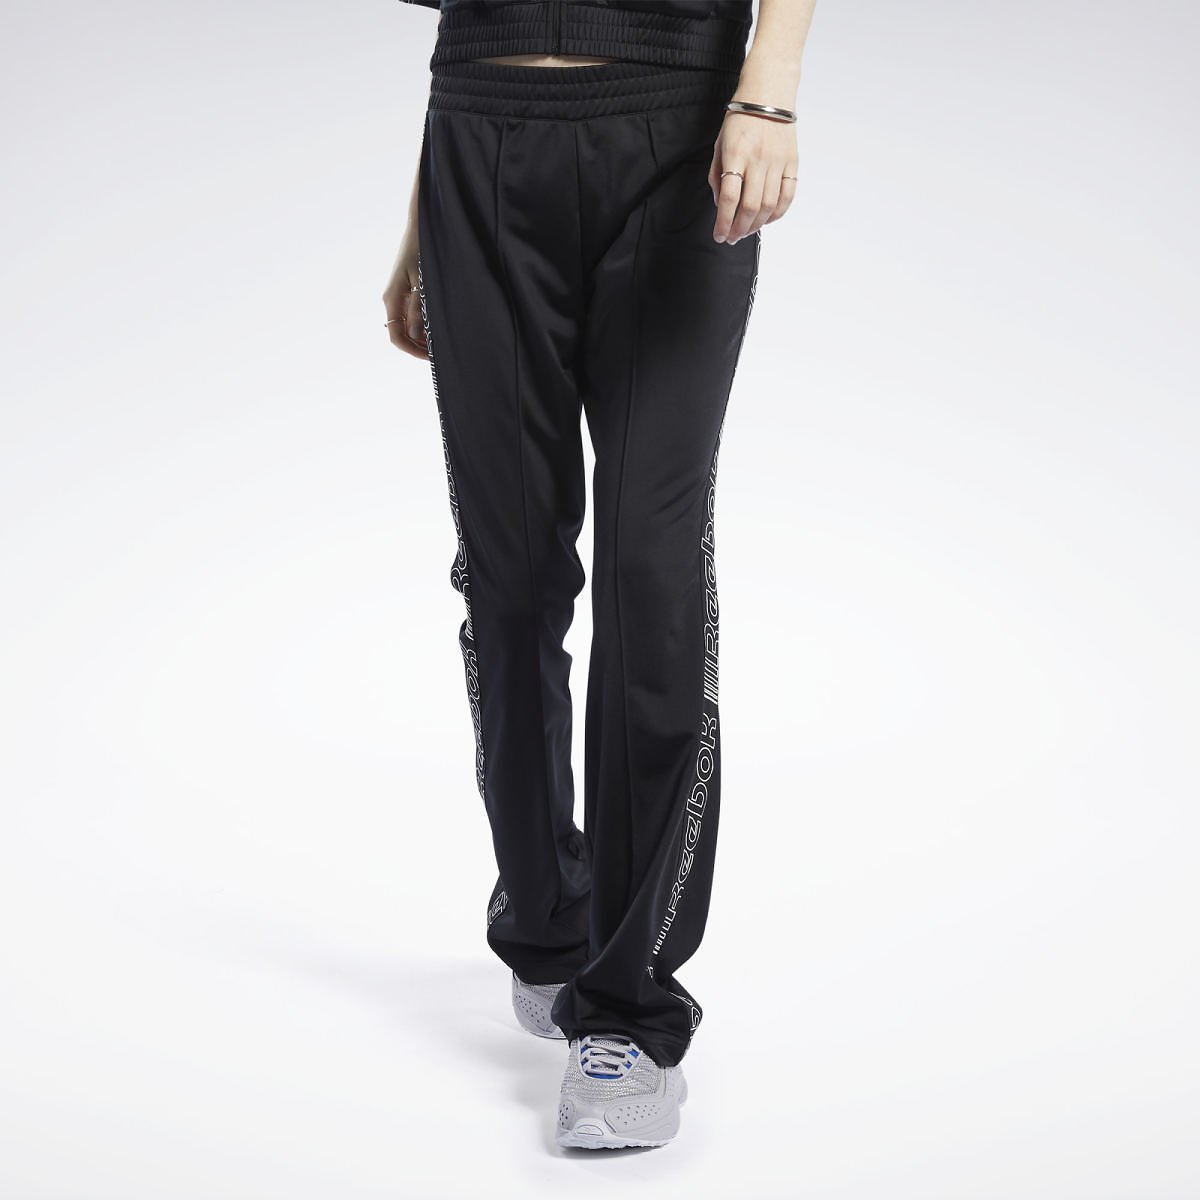 Women's Meet You There Track Pants - 2 Colors